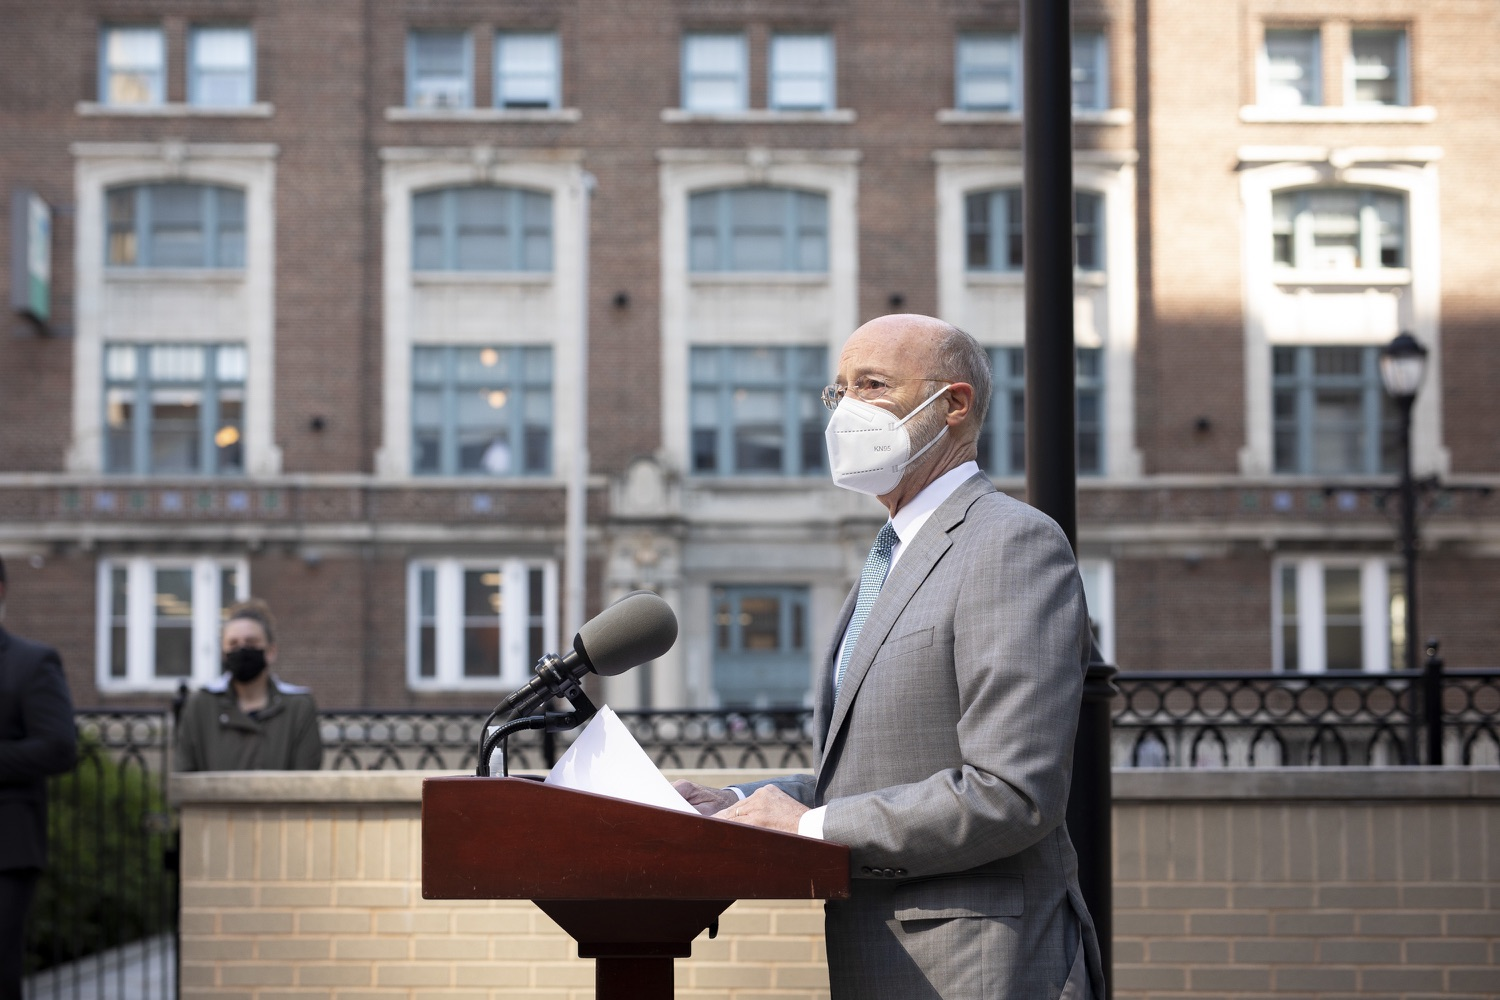 """<a href=""""https://filesource.wostreaming.net/commonwealthofpa/photo/18688_gov_vaccines_dz_011.jpg"""" target=""""_blank"""">⇣Download Photo<br></a>Pennsylvania Governor Tom Wolf speaking with the press.  As Pennsylvania continues its accelerated COVID-19 vaccination plan, Pennsylvanians who are not able to leave their homes must be reached, and various state agencies and community groups are helping. Governor Tom Wolf visited Reading to talk about how the state and its partners are using various means to reach people not able to leave home to be vaccinated against COVID-19.  APRIL 26, 2021 - READING, PA"""